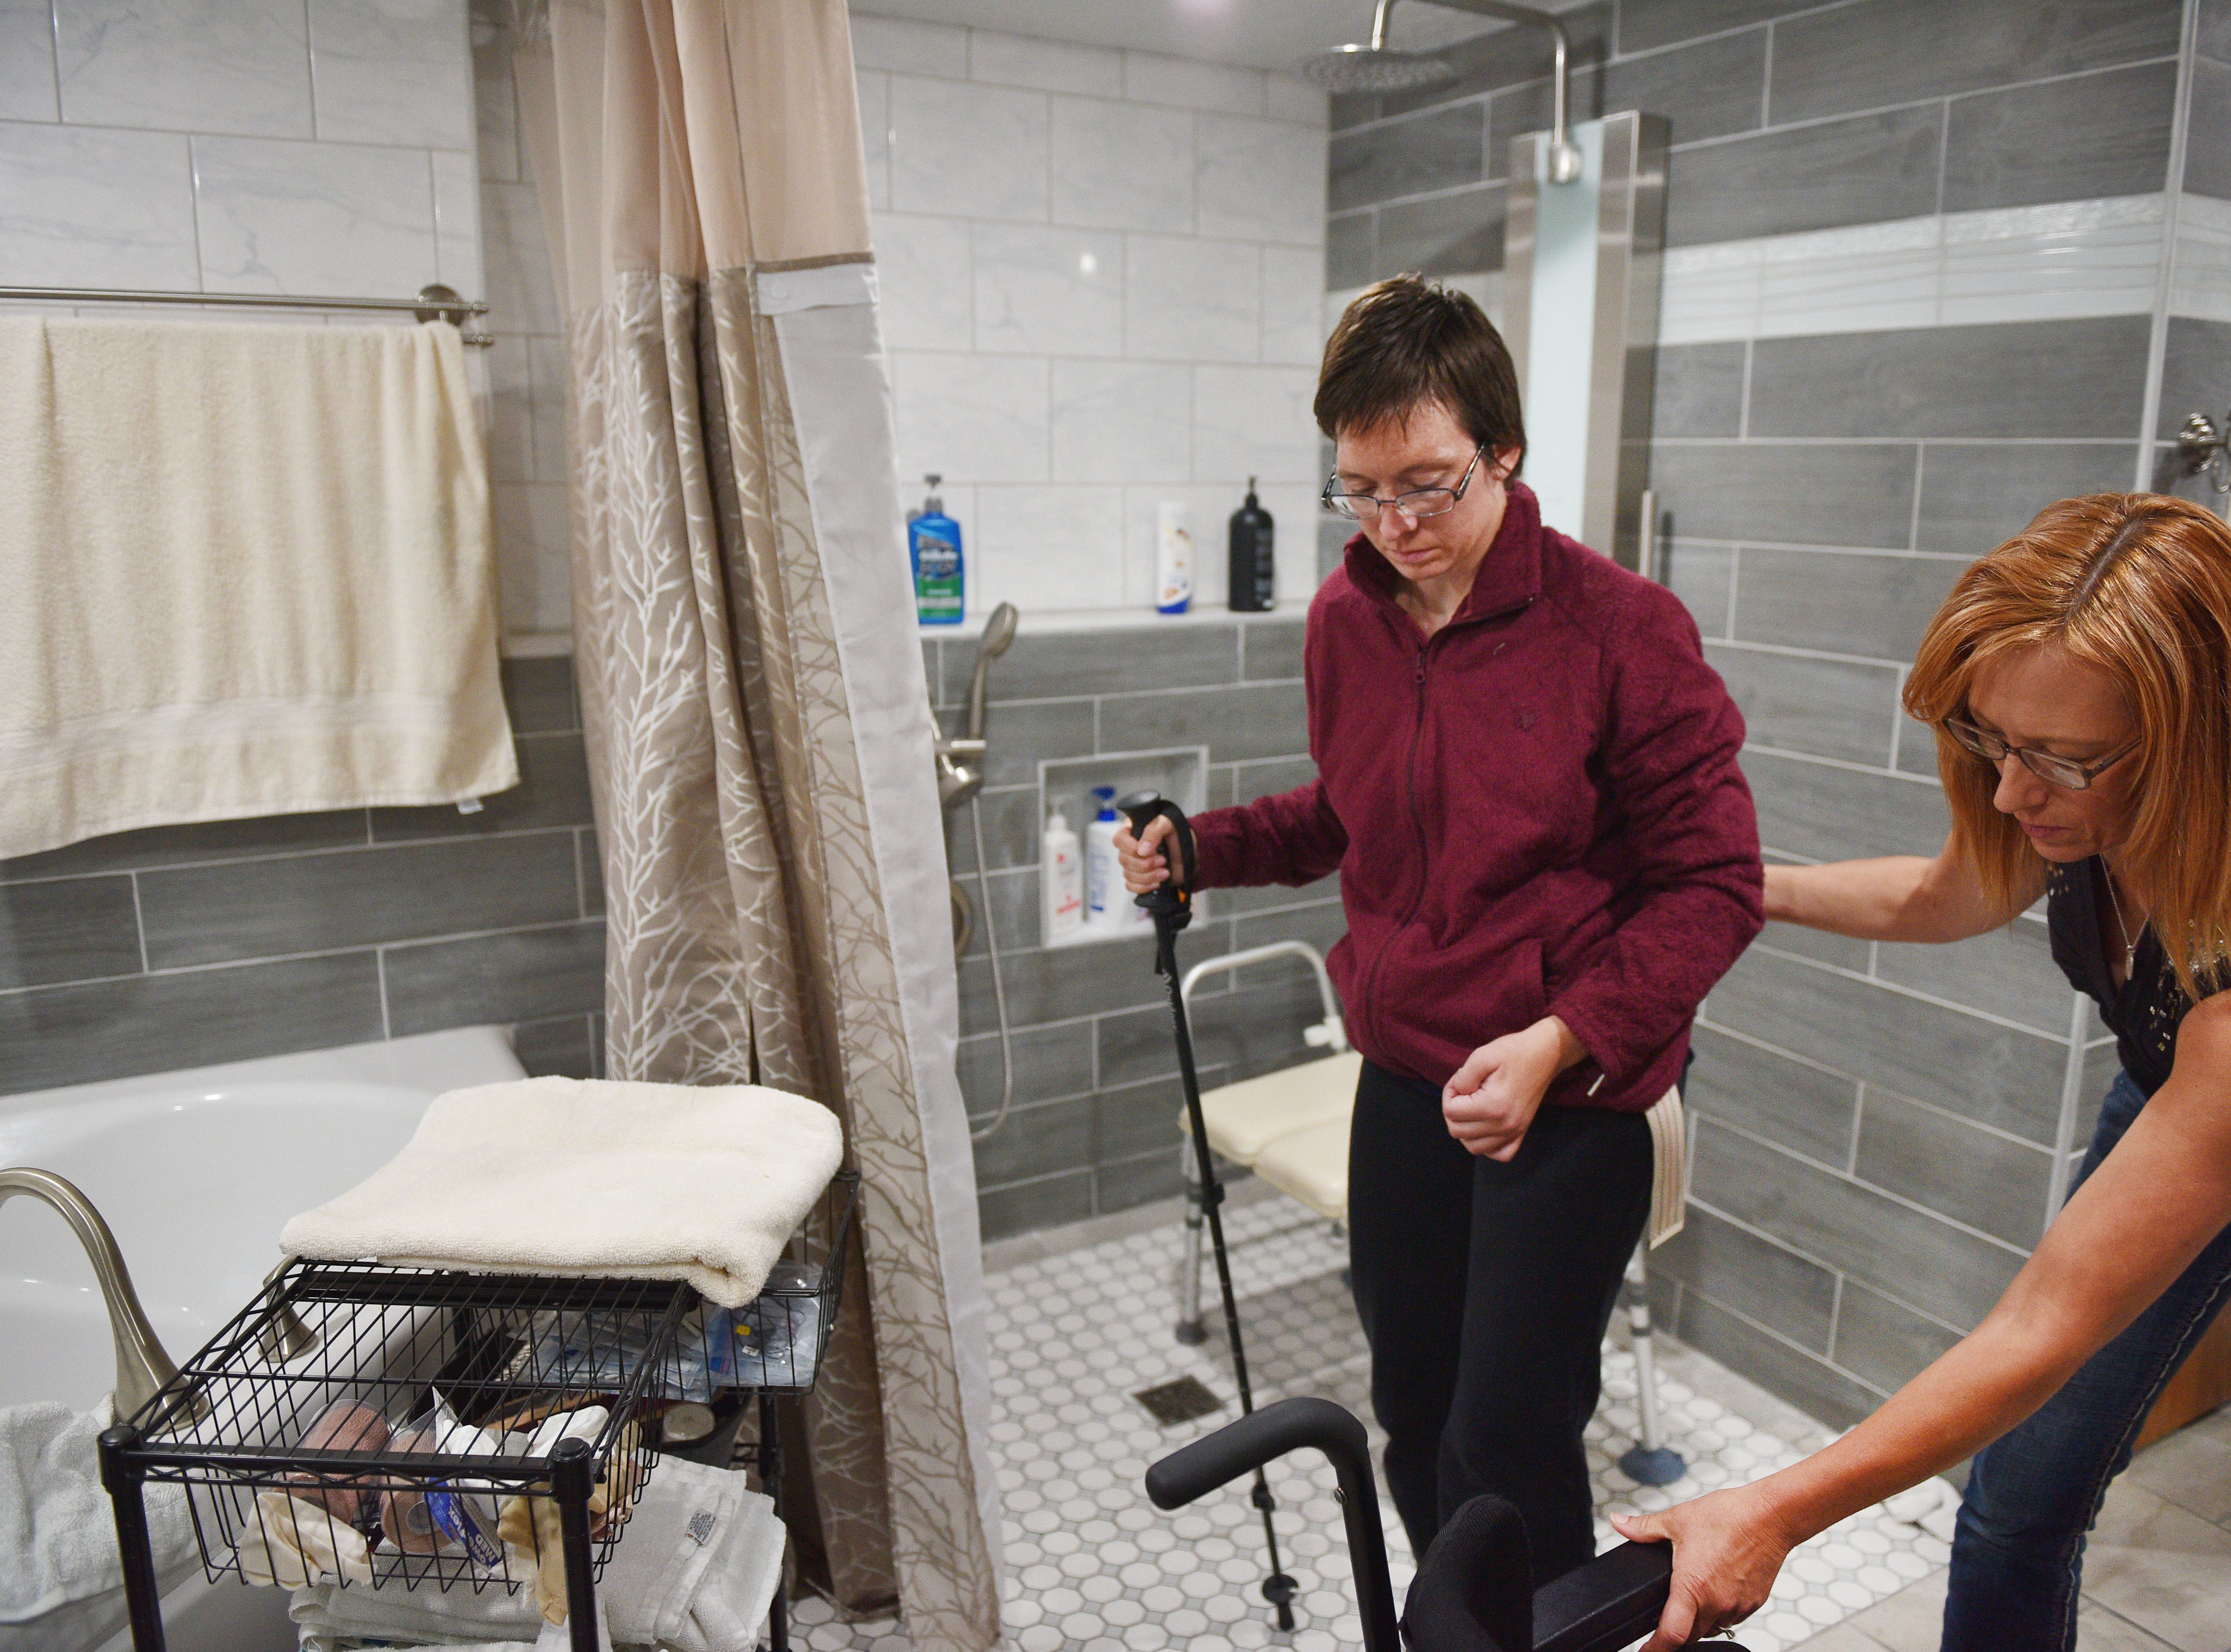 Ashley Van Hemert talks about the remodeling her mom and dad did to the downstairs basement to make it handicap accessible, Friday Sept. 28, at their home in Sioux Falls.